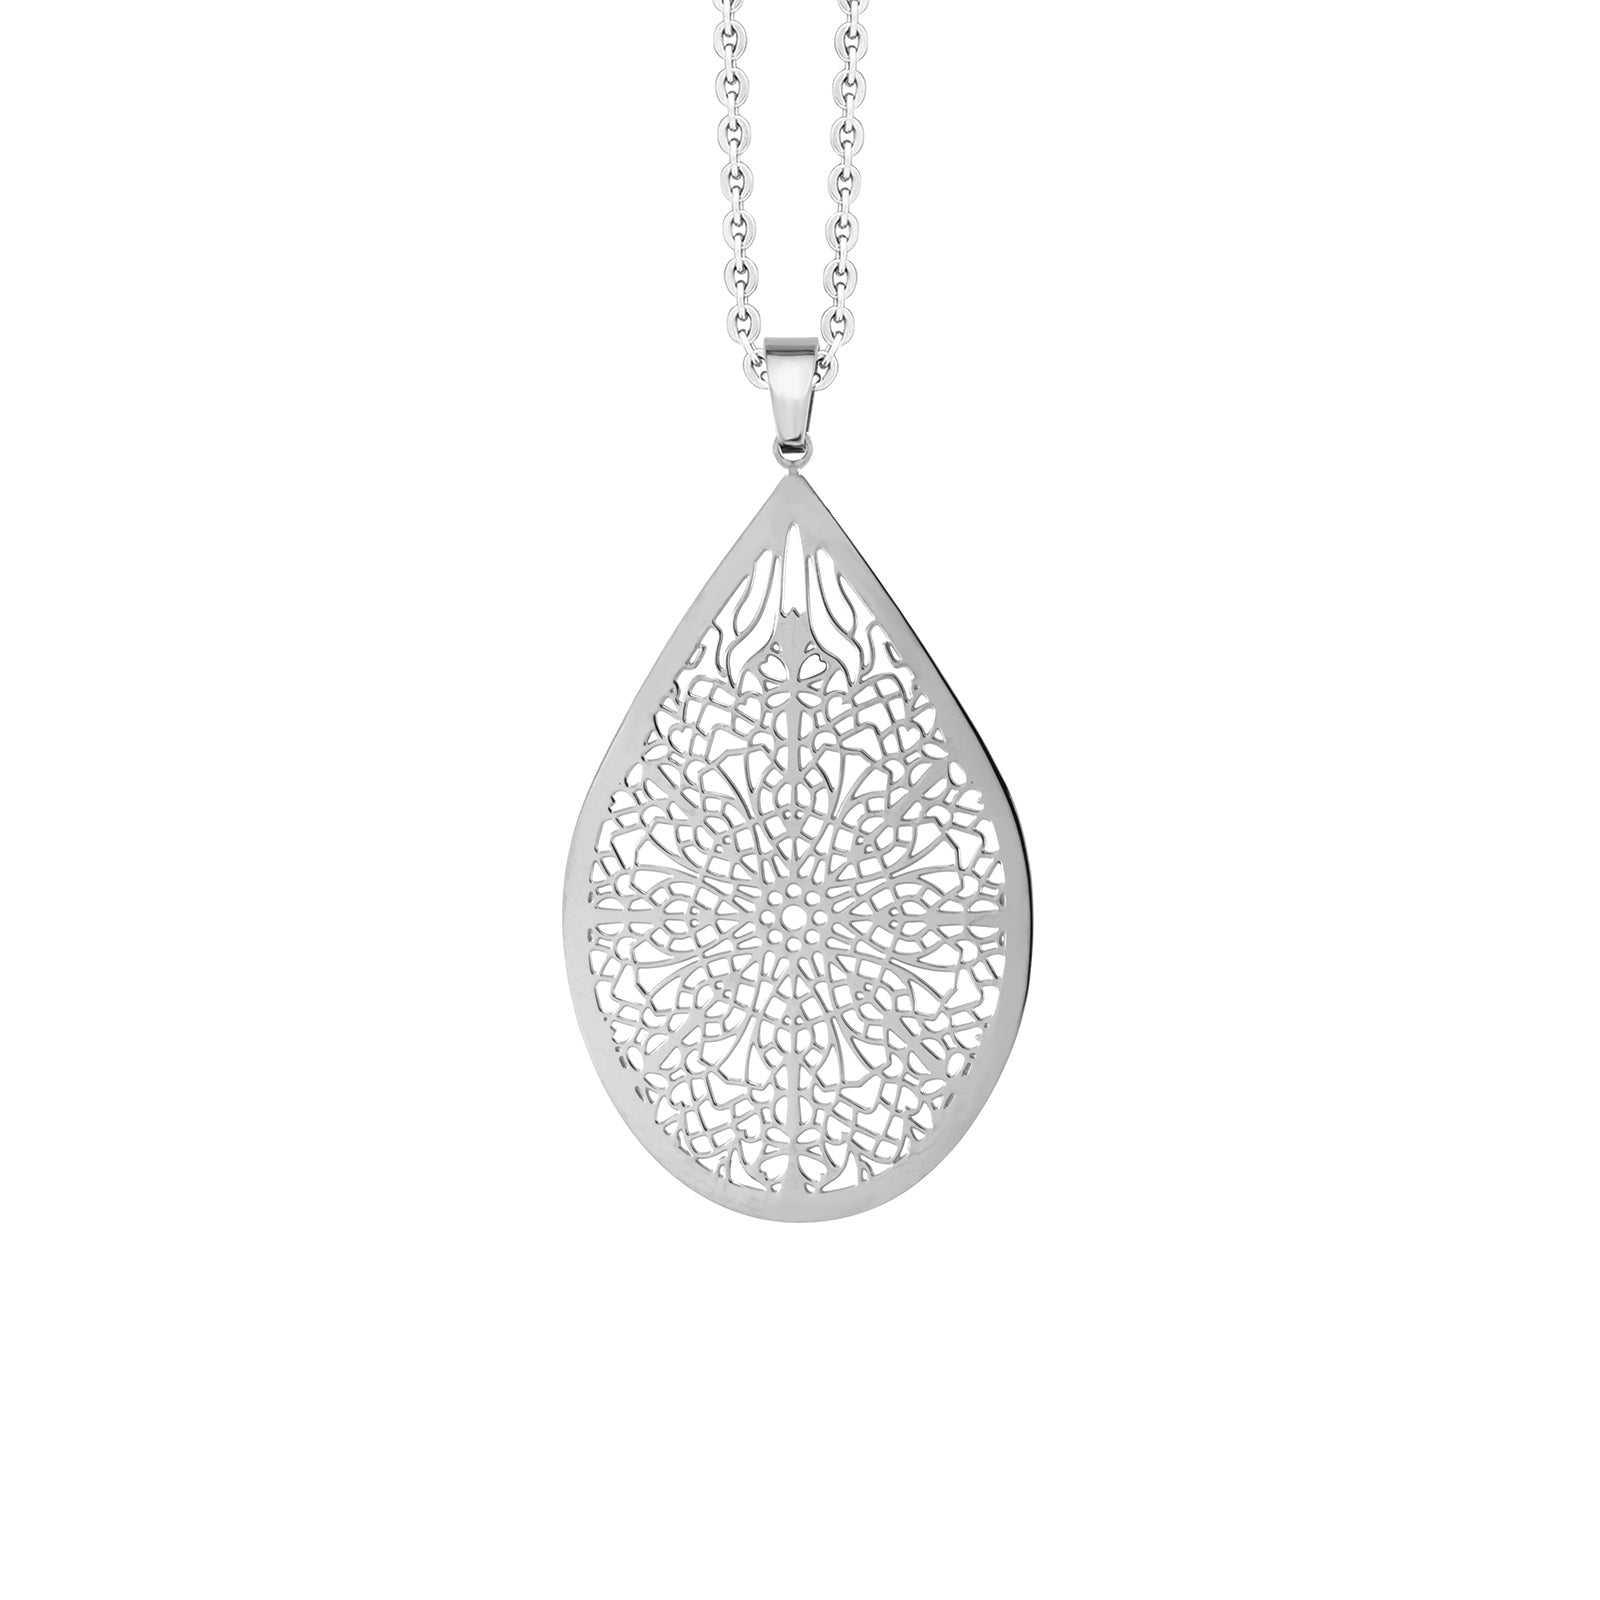 MNC-P109-A Stainless Steel Pendant Necklace